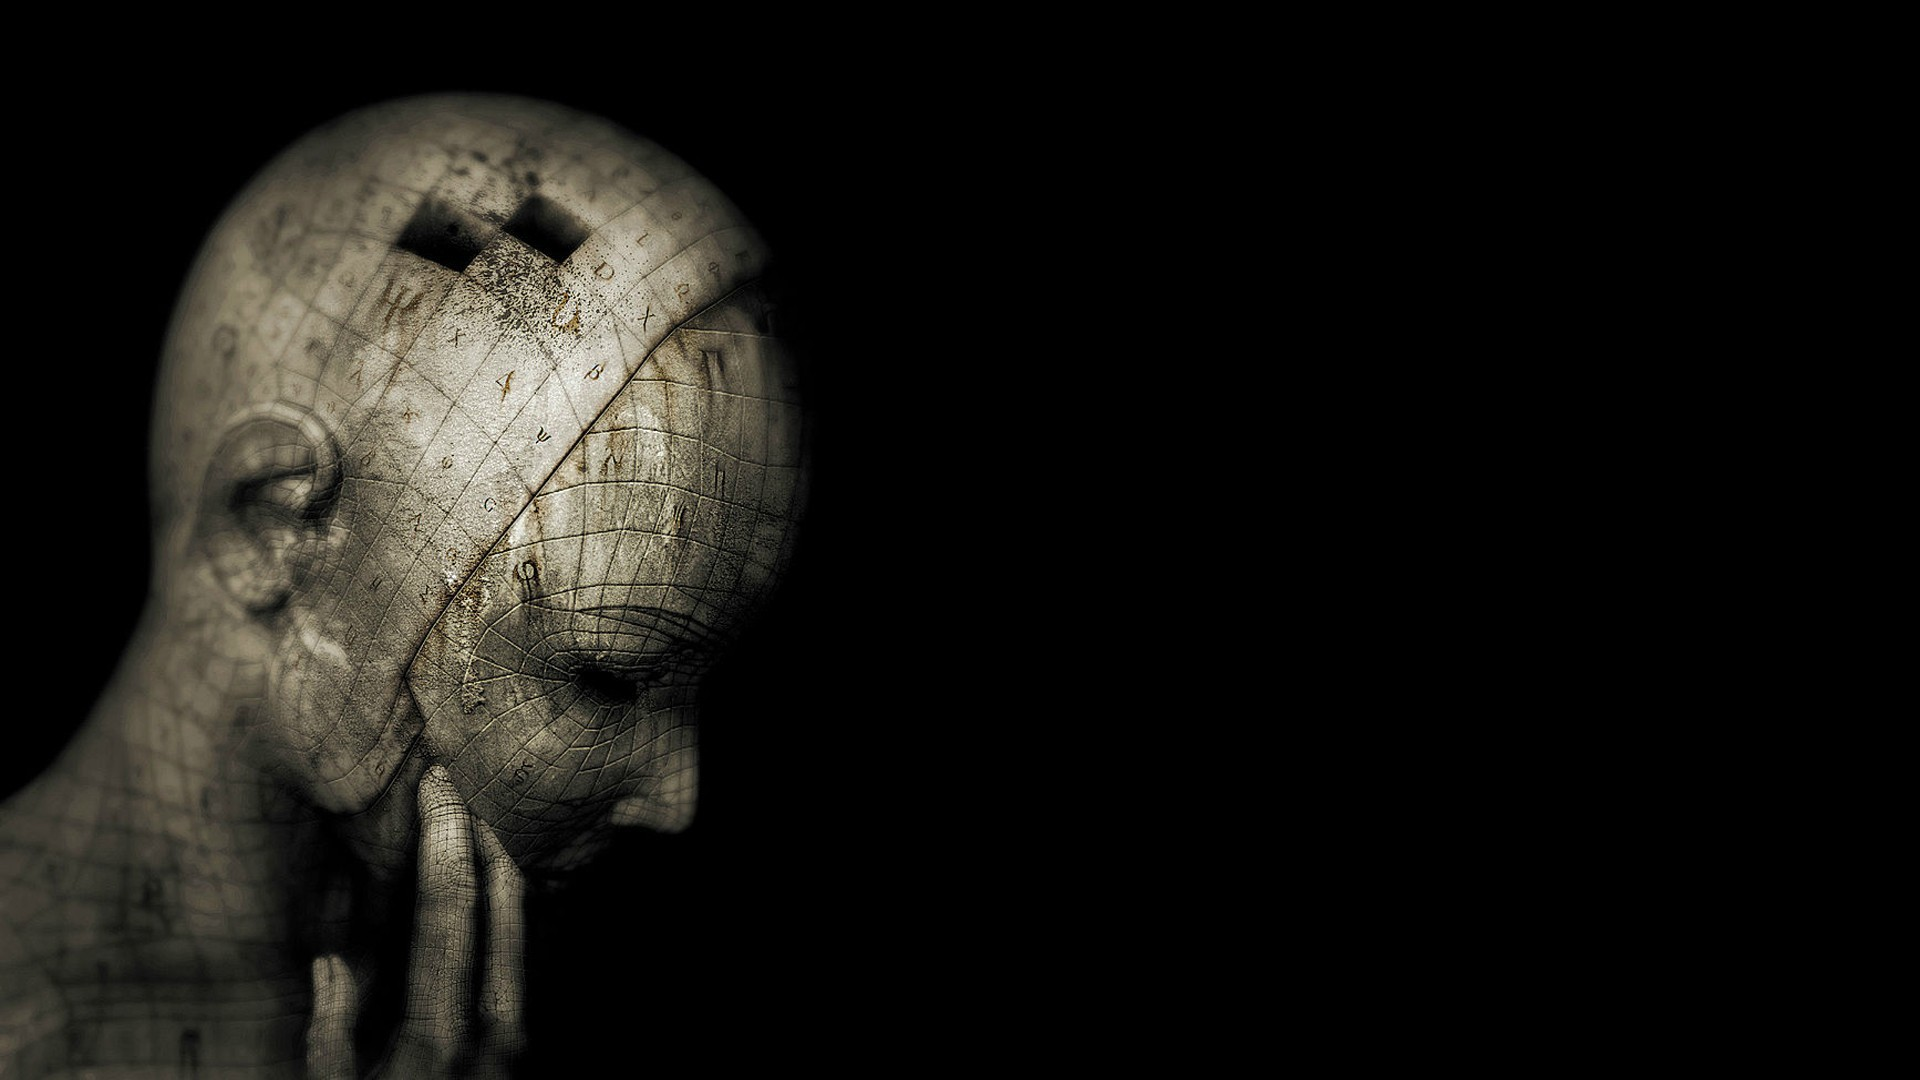 Head on a black background wallpapers and images - wallpapers ...